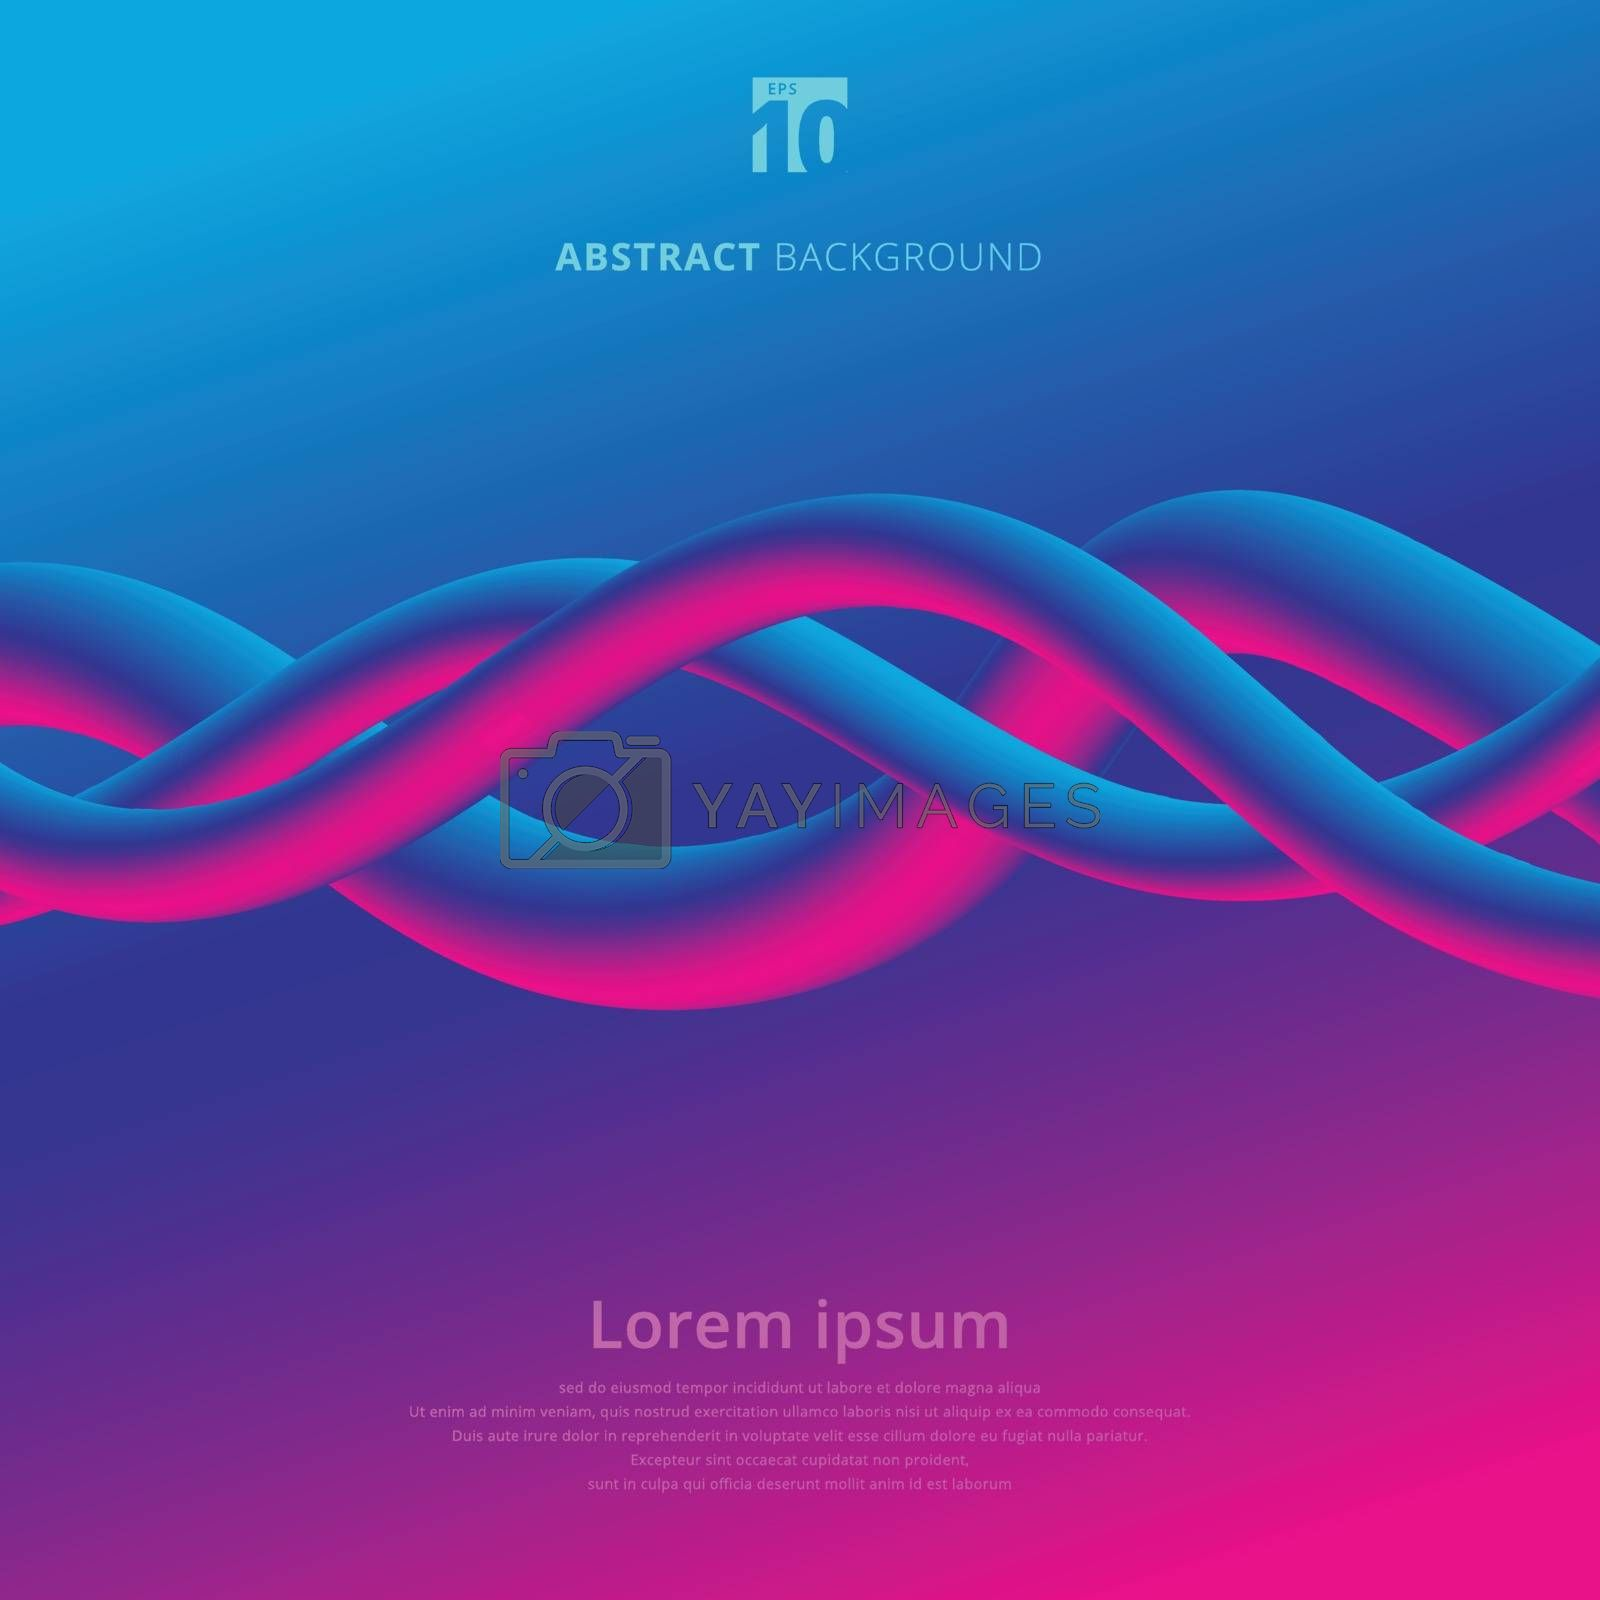 Abstract 3D rendering lines colorful spiral wires background. Liquid fluid wave color. Vibrant gradient stream. Creativity concept visual communication poster design